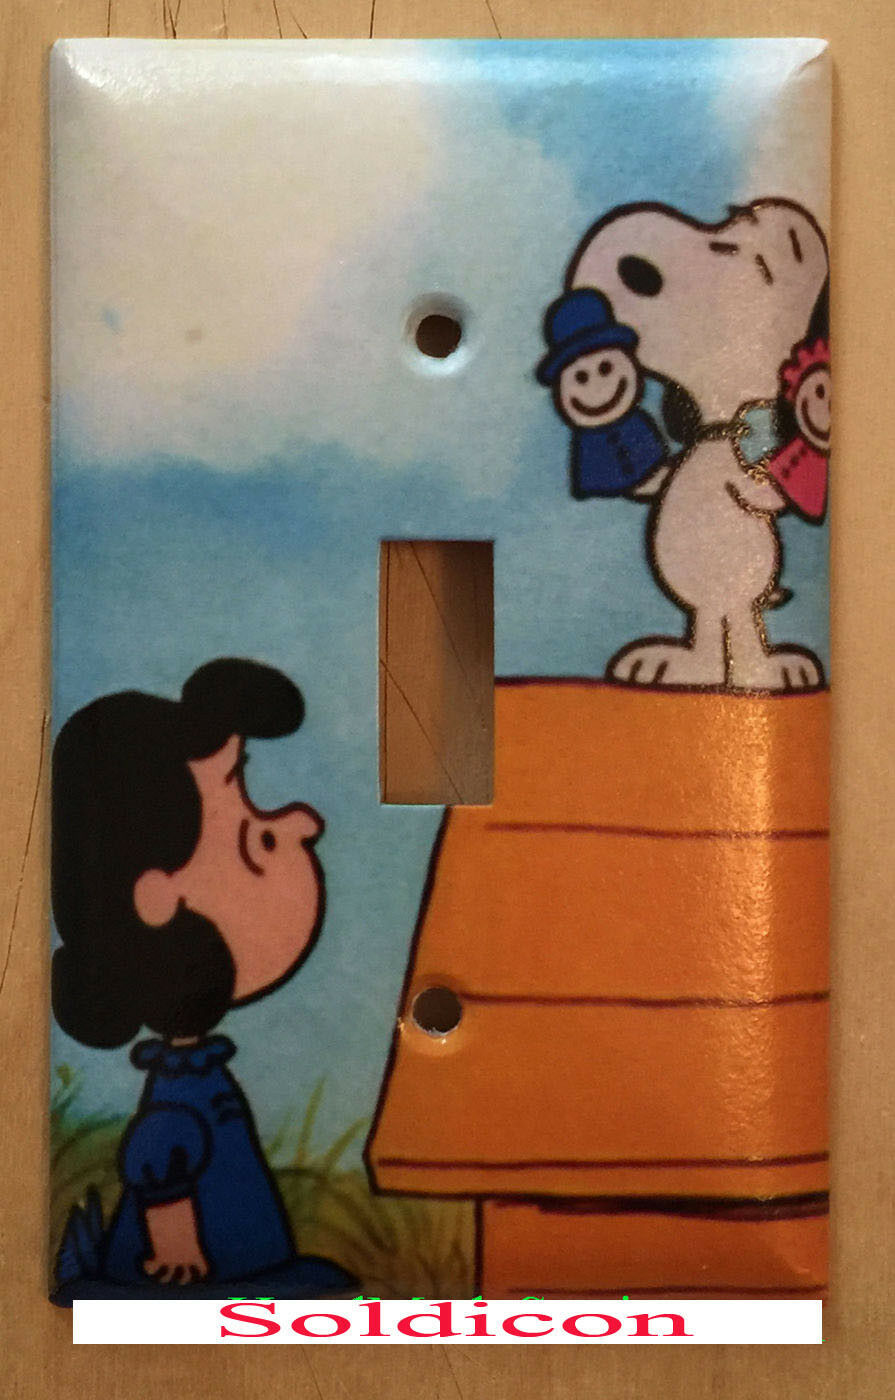 Peanuts Snoopy Lucy Light Switch Power Duplex Outlet Cover Plate Home decor